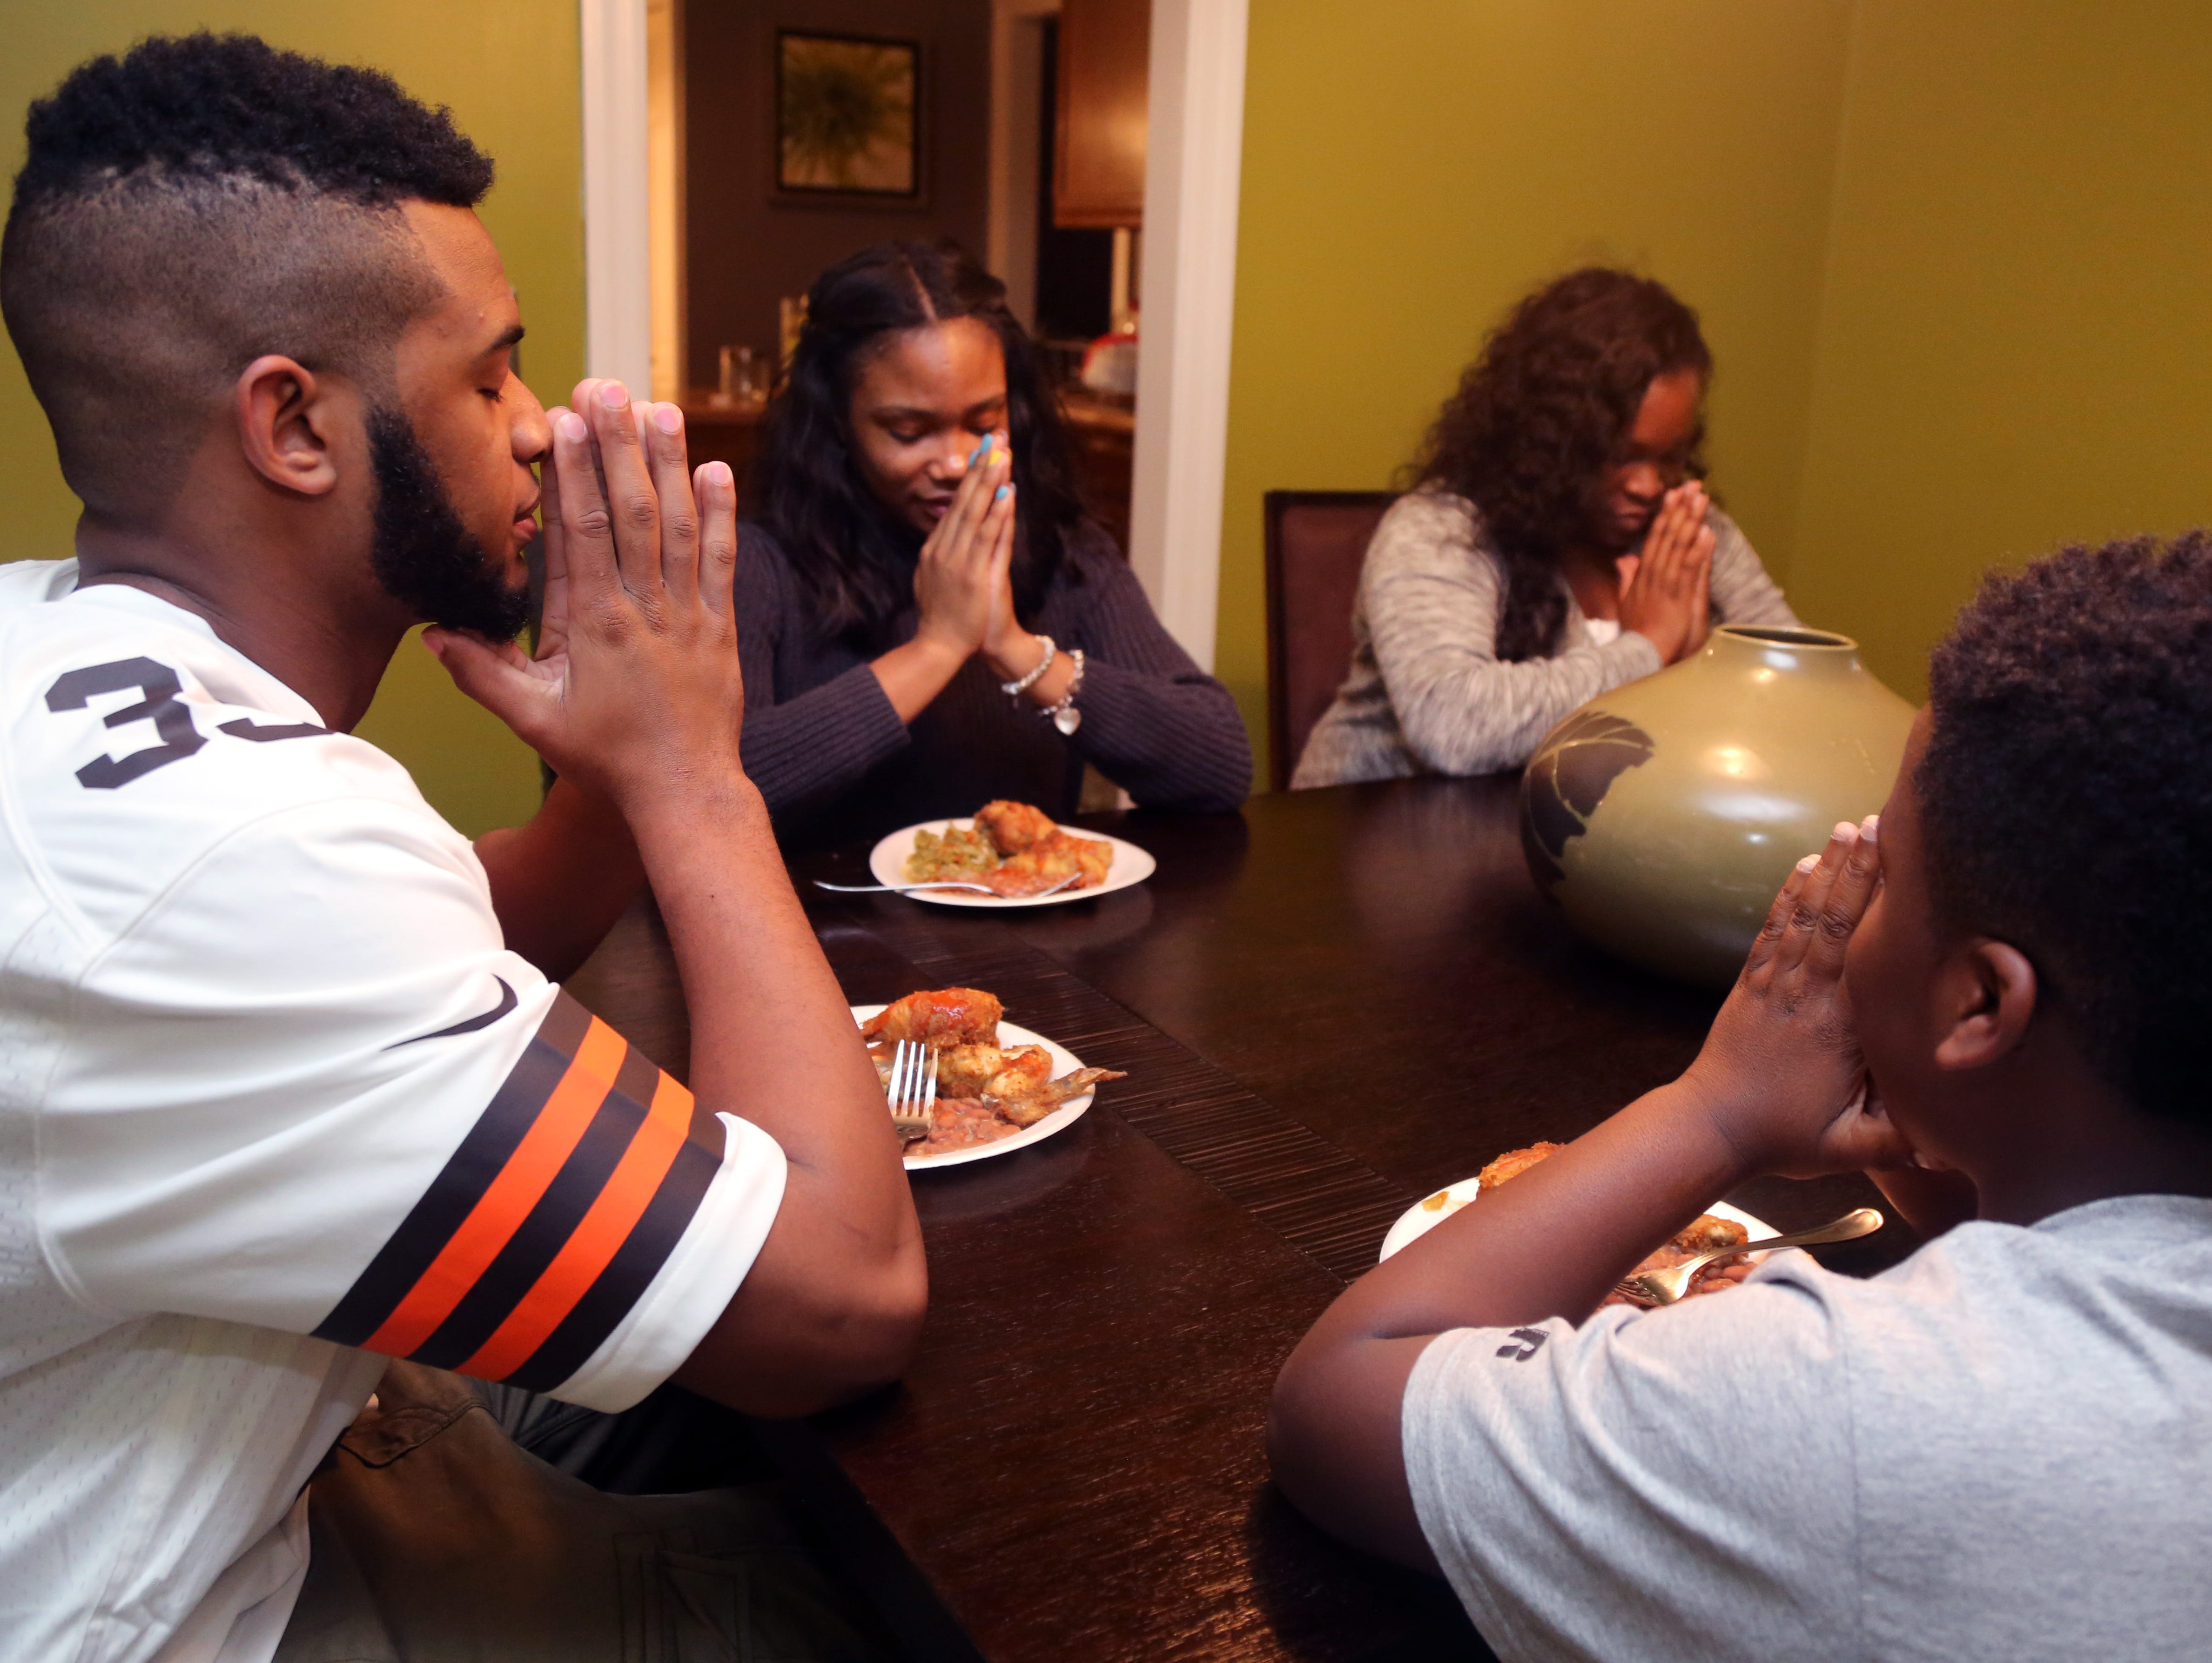 From left to right, Davarius Cortner, Doncoria Cortner, Vanessa Cortner and Kevon Frierson pray before they have dinner on Tuesday, the eve of national signing day.